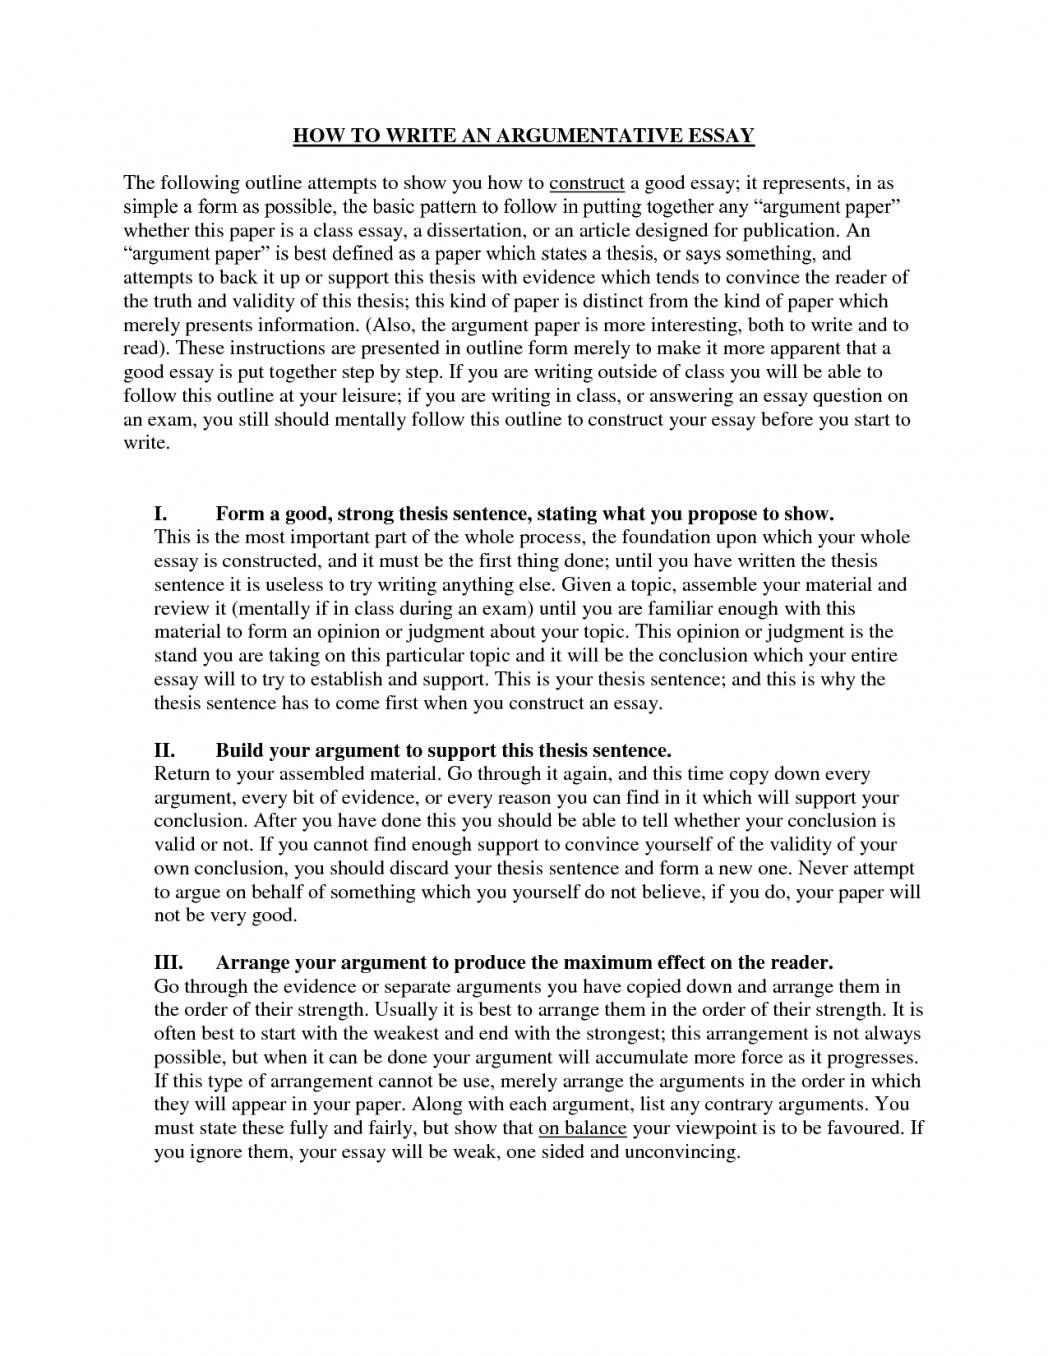 010 Writing Thetive Essay Top Rated Service How To Write An Step By 57cou Start Off Example Introduction Thesis Statement Body Paragraph Ap Lang Conclusion Pdf 1048x1356 Marvelous Argumentative Effective Outline Full